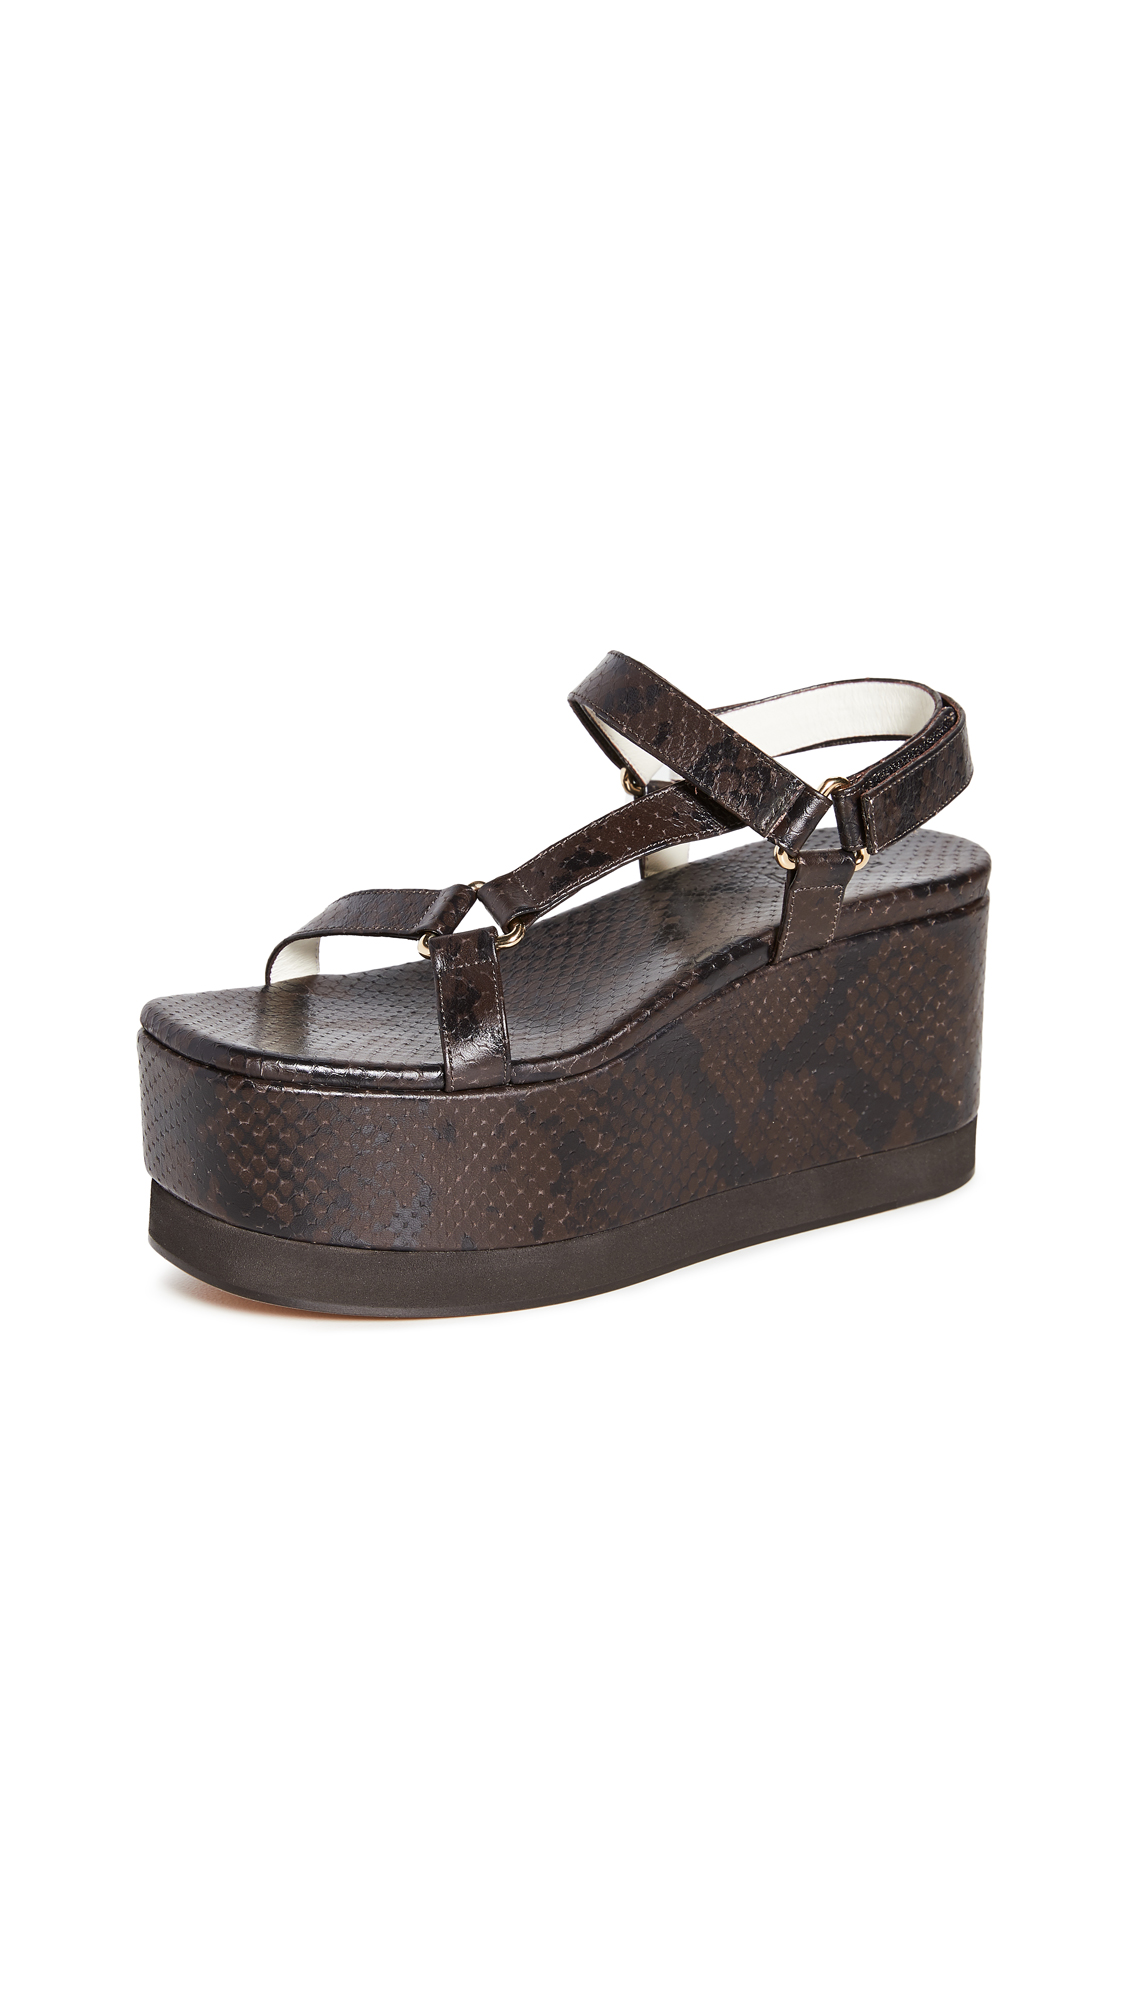 Tibi Masa Platform Snake Sandals – 50% Off Sale